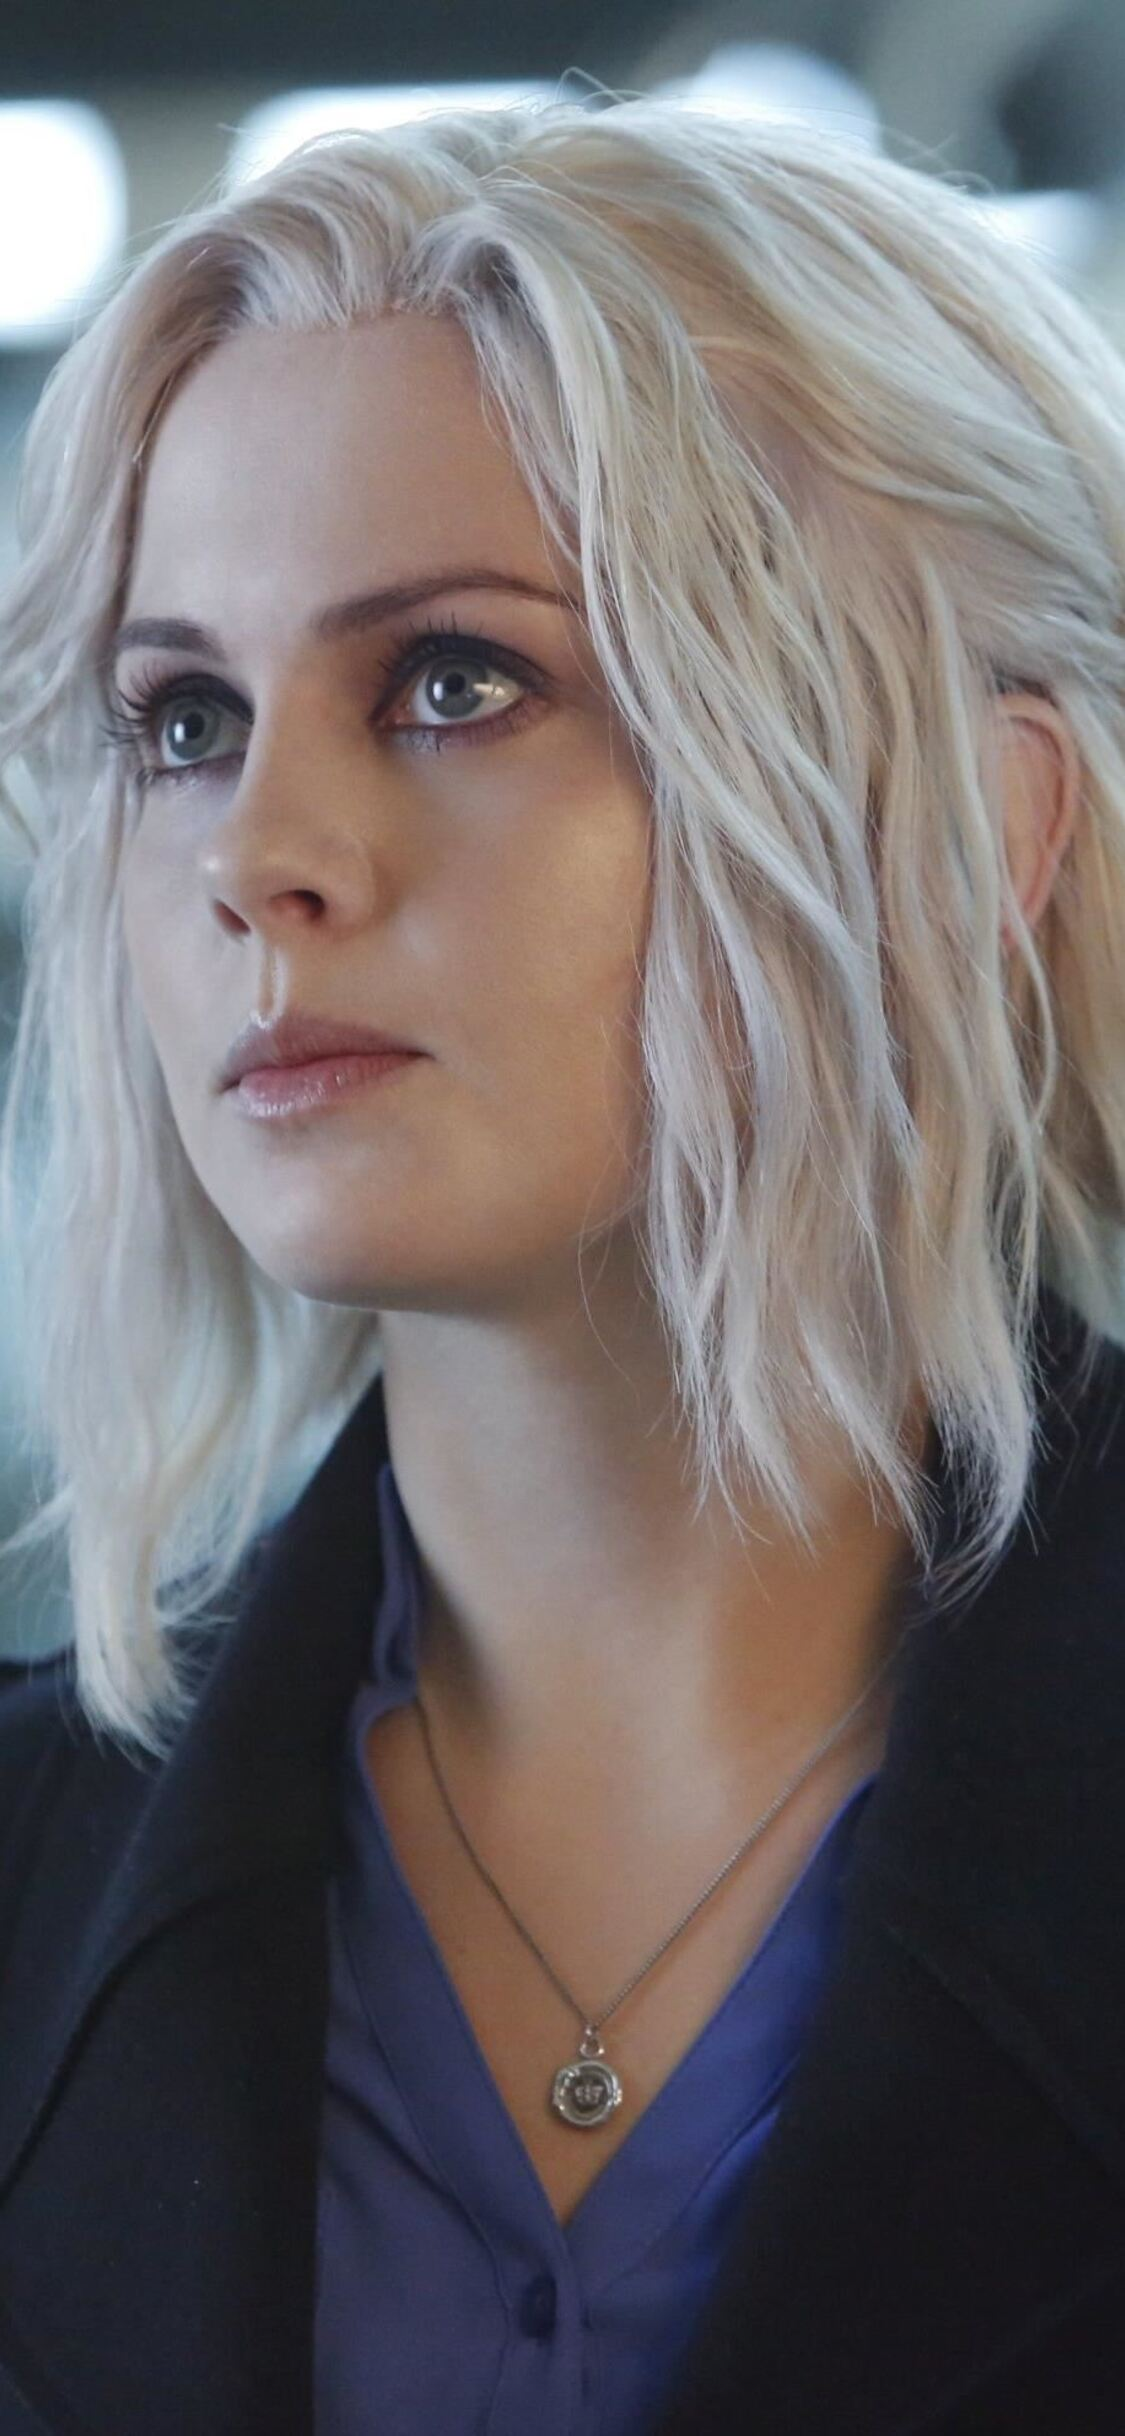 1125x2436 izombie rose mciver iphone x,iphone 10 hd 4k wallpapers